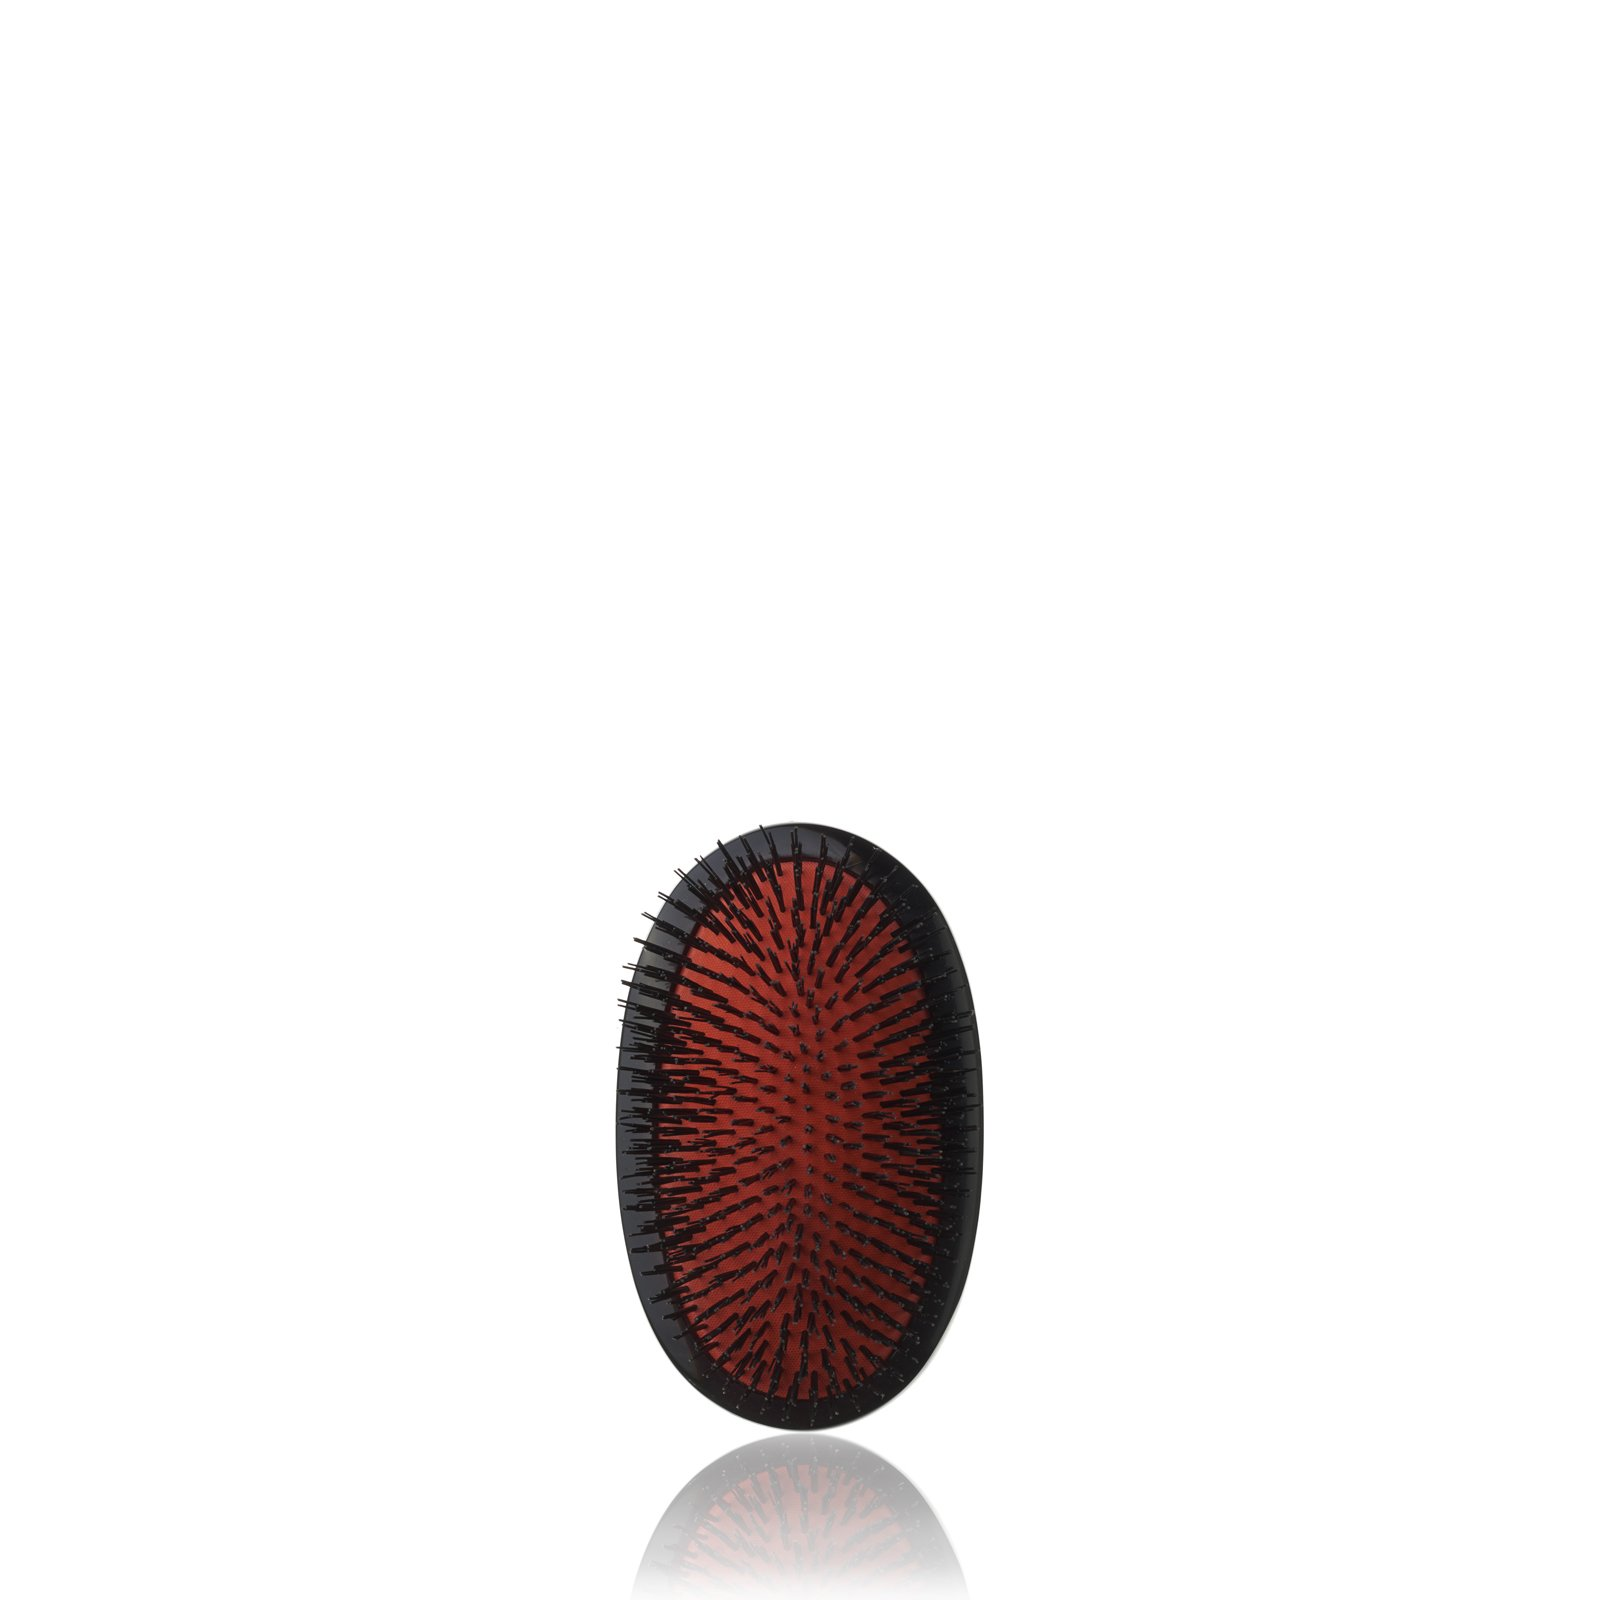 B1M Large Extra Military Hairbrush from Mason Pearson (Dark ruby)